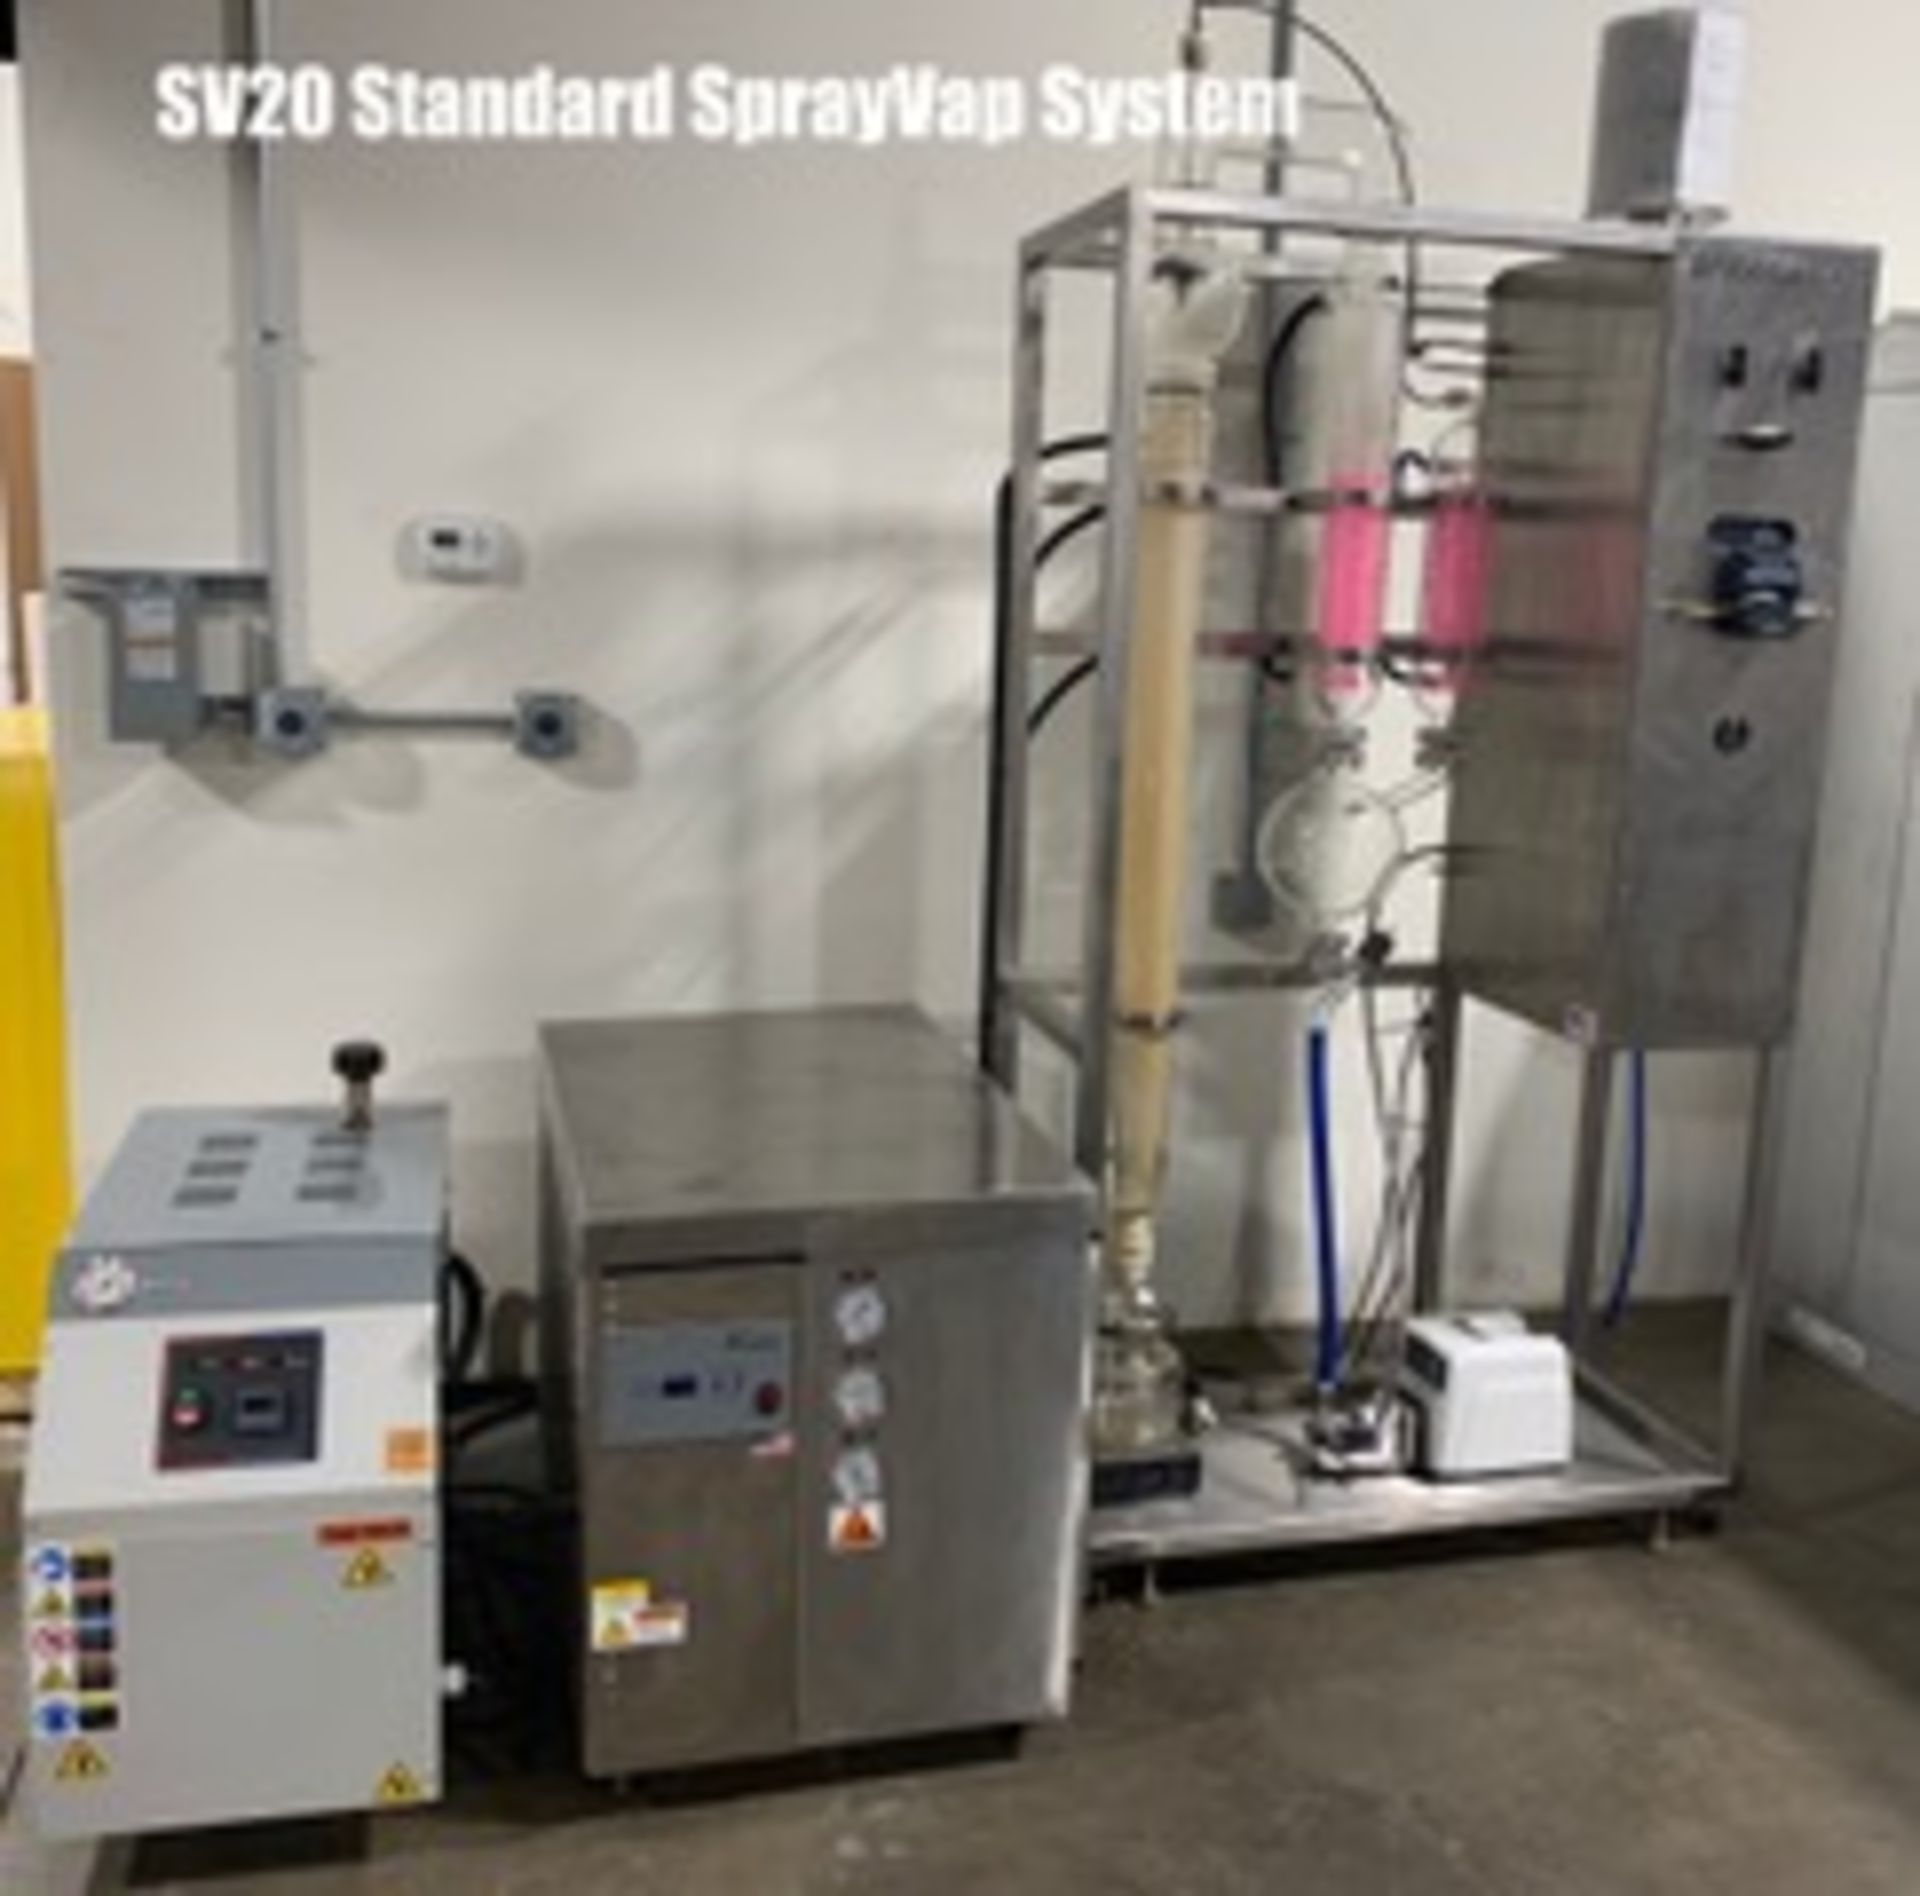 Used-Colorado Extraction Systems SprayVap System w/TripleXtract System. Model SV20. - Image 5 of 27